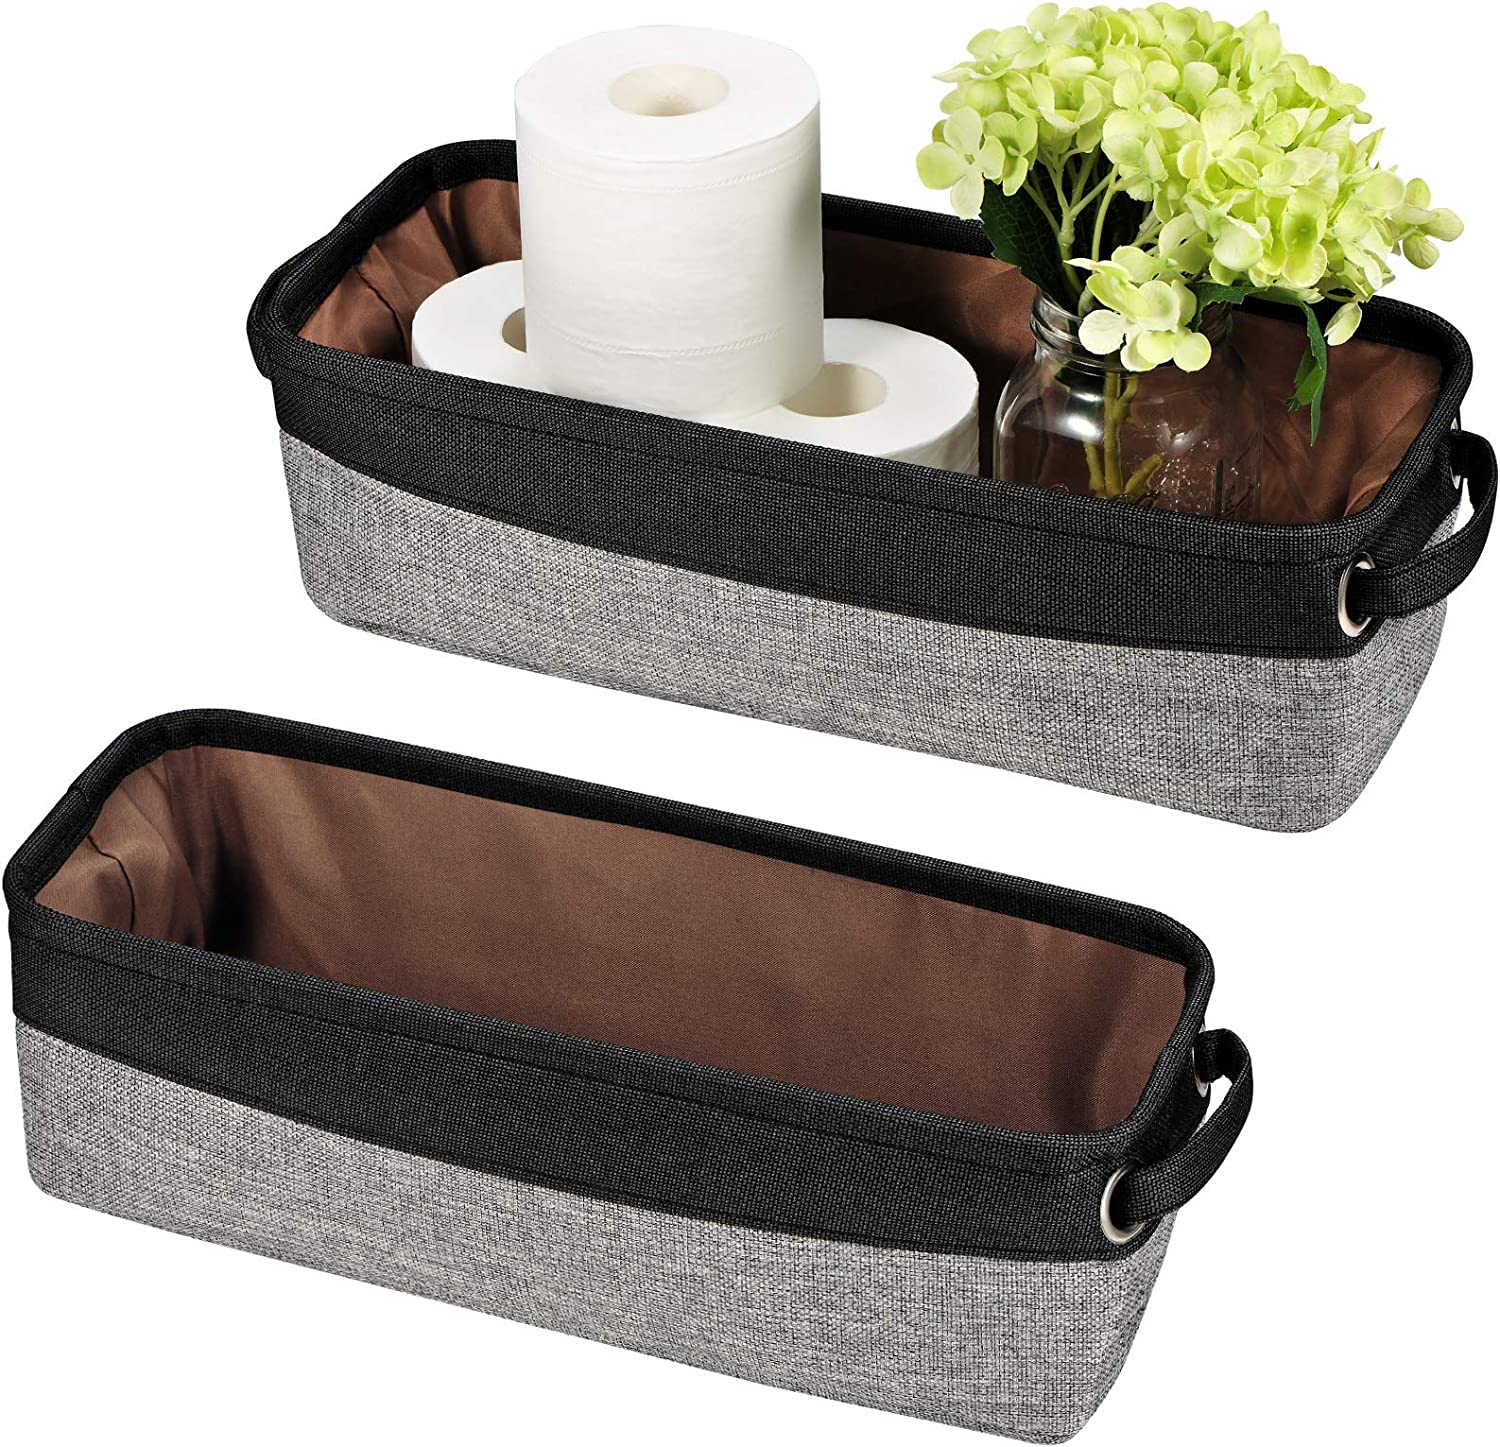 Soft Cotton Genuine Fabric Home Storage Coated with Interior Handl Bin Challenge the lowest price of Japan